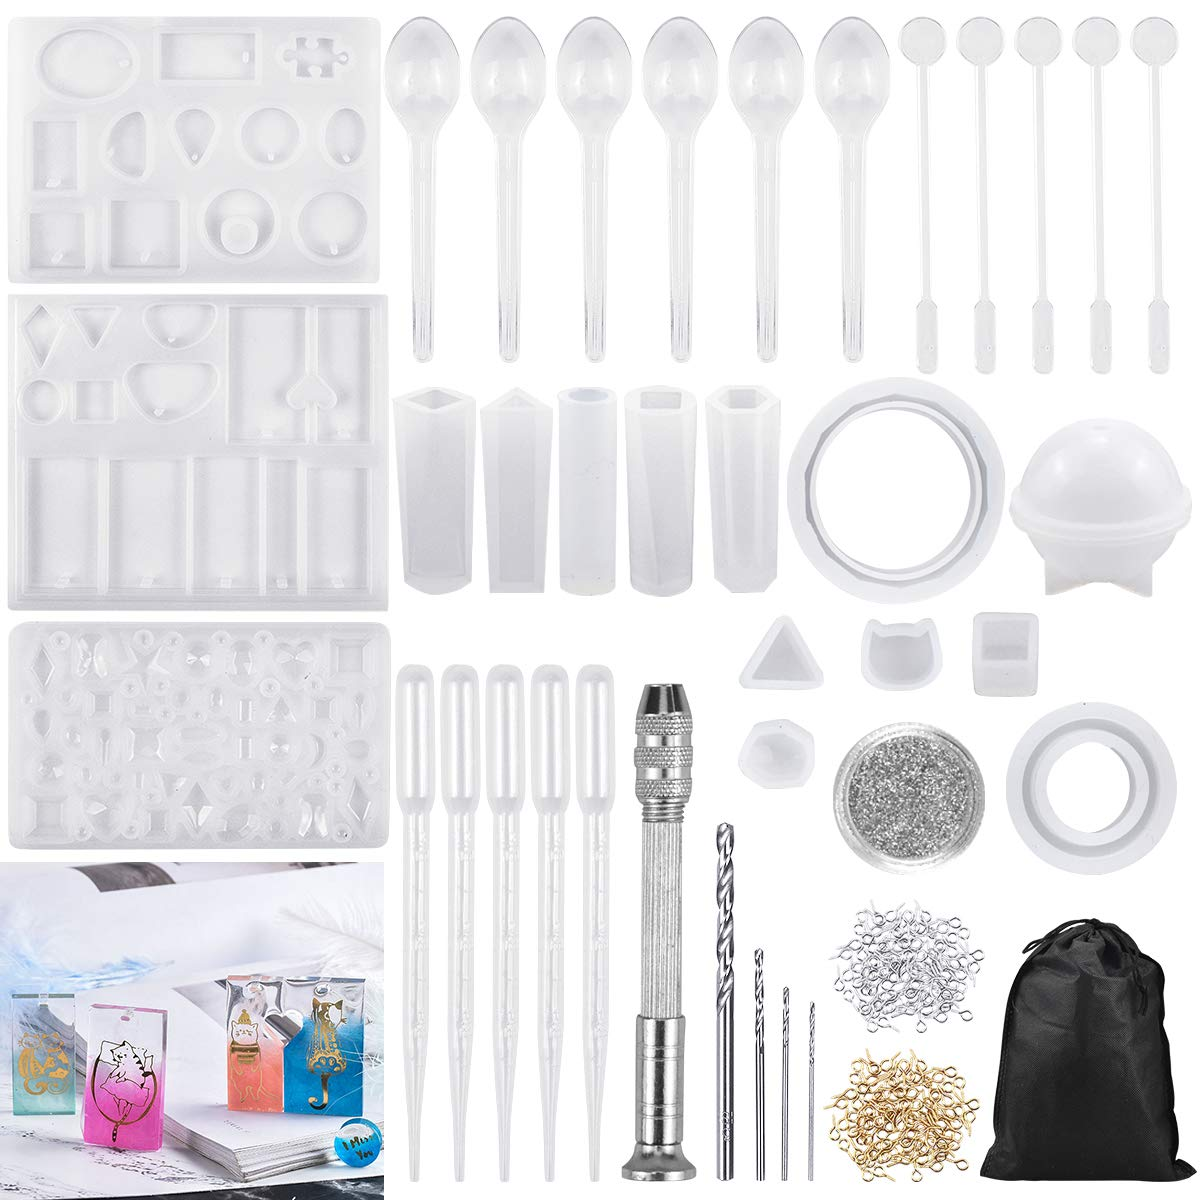 Dokpav 86PCS Silicone Resin Moulds for Jewellery Making, Jewelry Casting Molds, Epoxy Resin Moulds, Jewelry Pendant Moulds, Resin DIY Craft Stencils for Pendant Bracelet Key Chain Handmade Craft